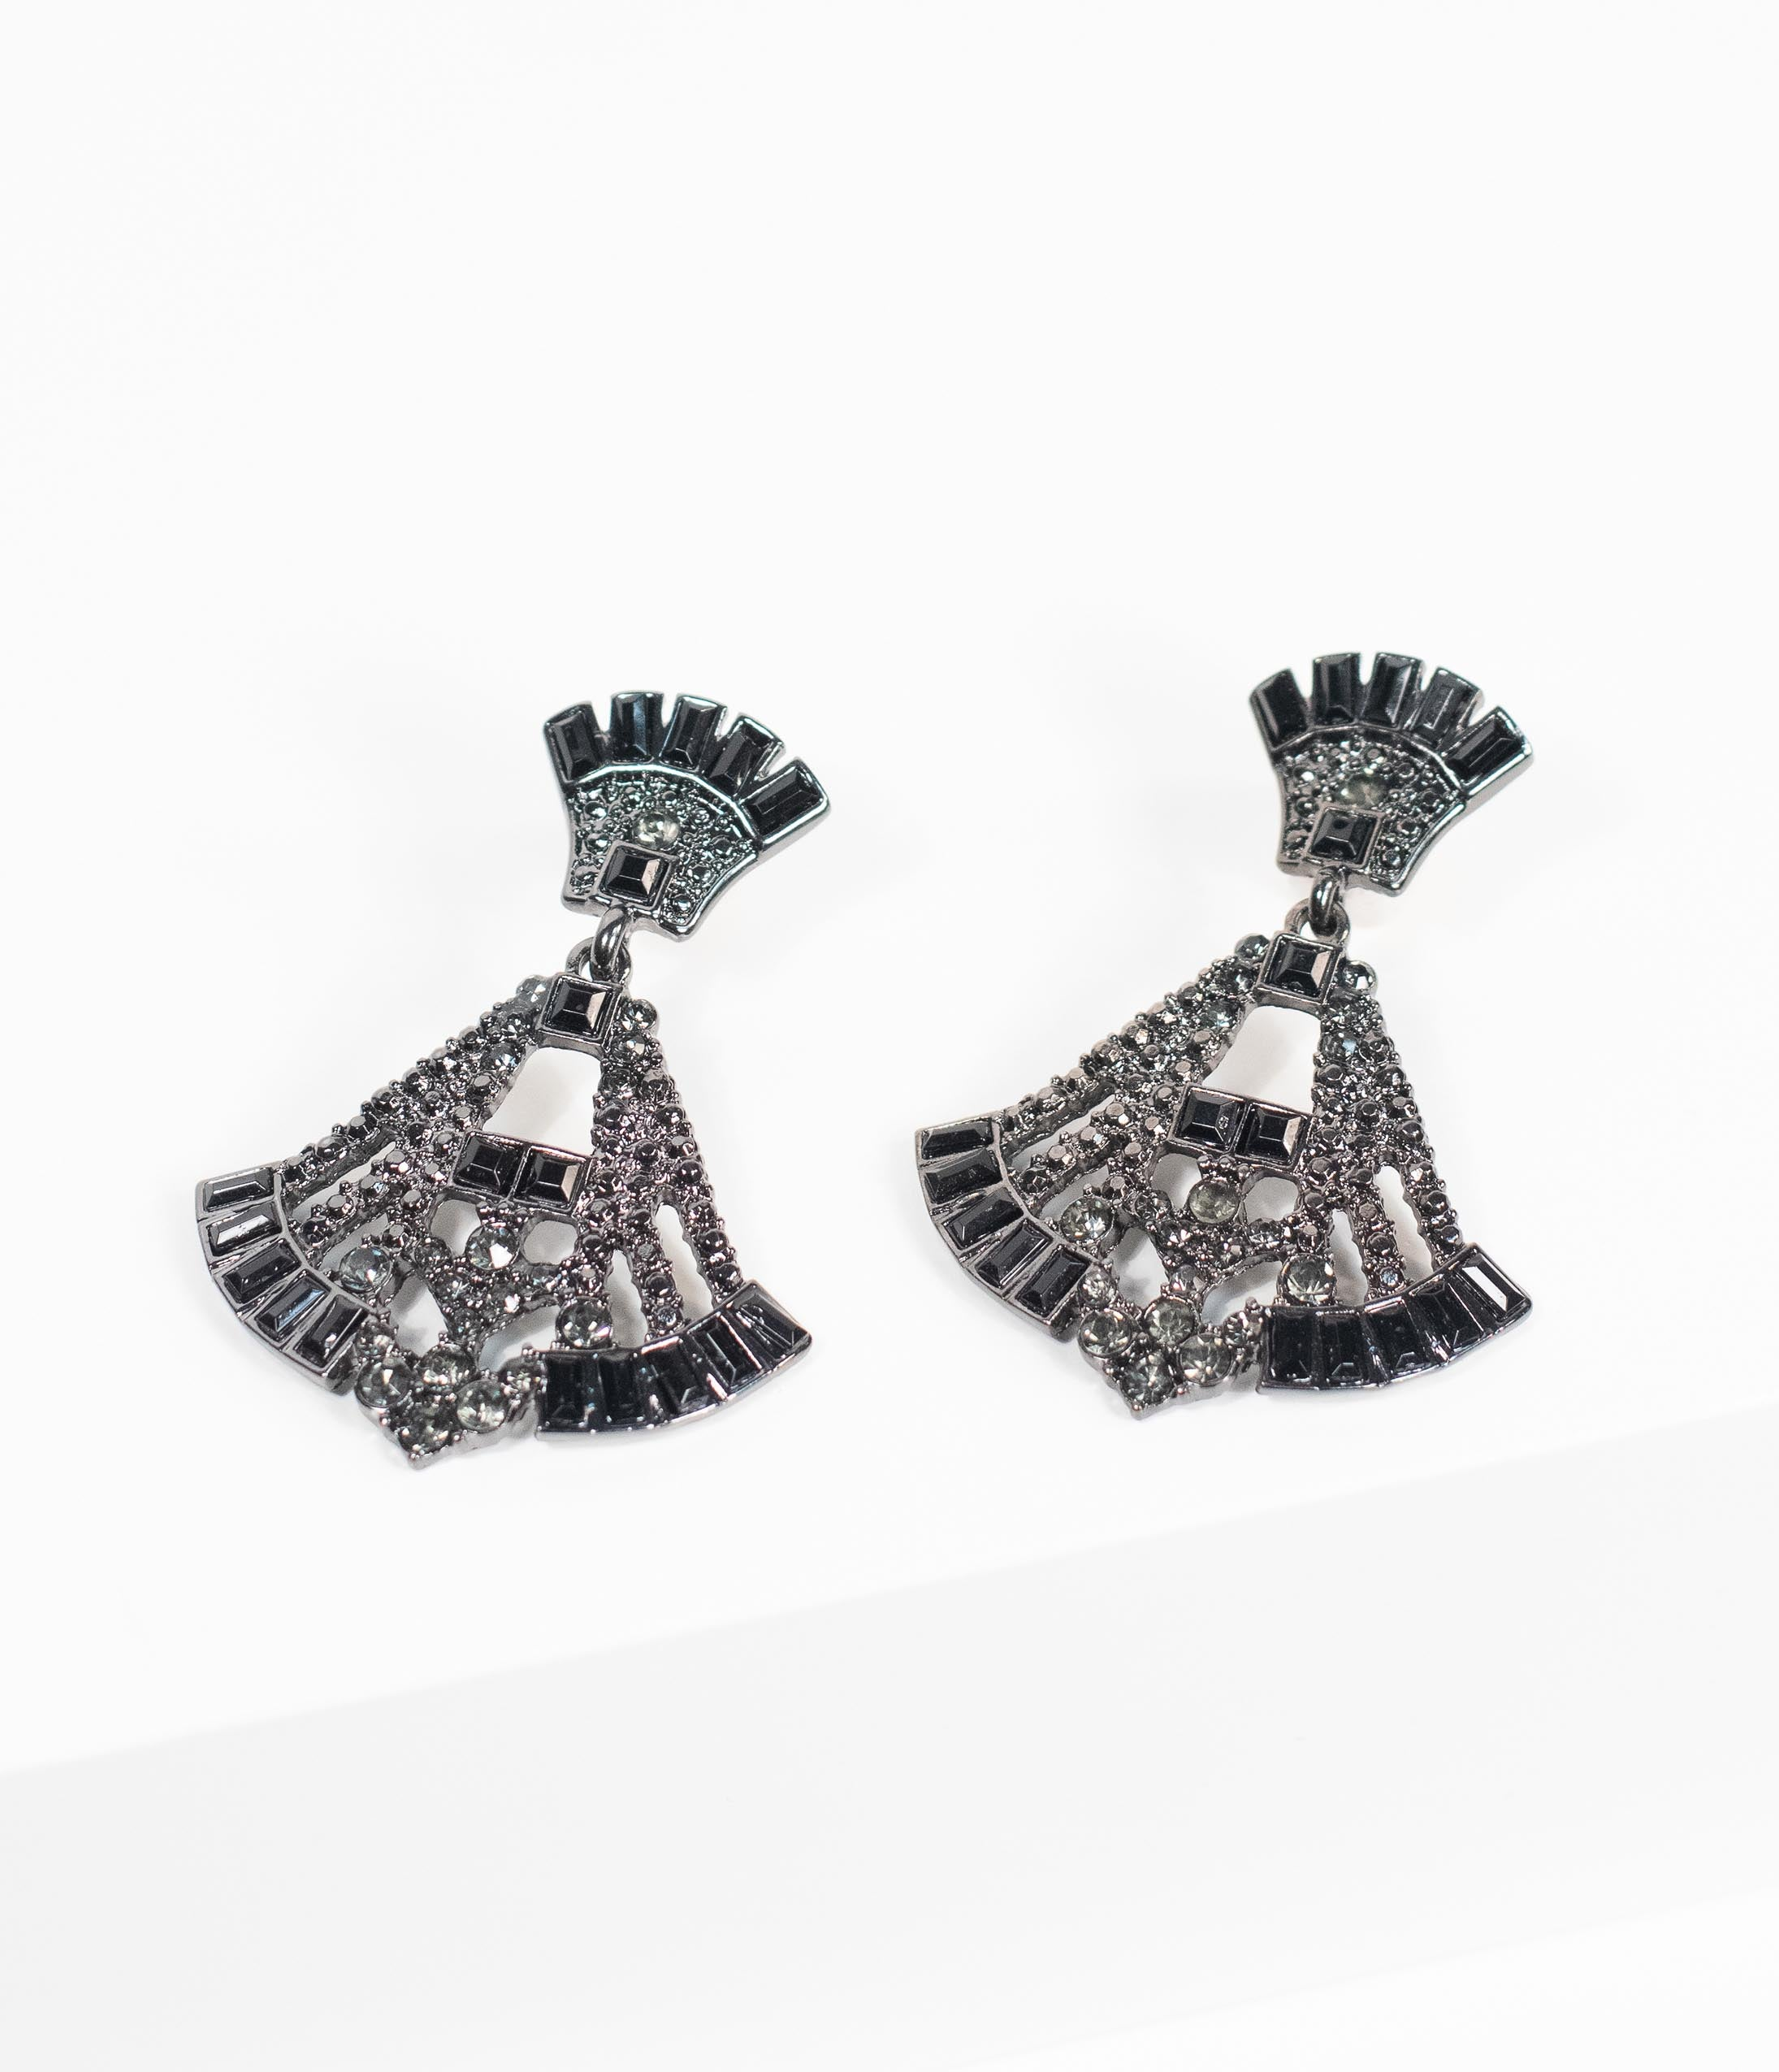 1920s Gatsby Jewelry- Flapper Earrings, Necklaces, Bracelets Deco Style Black Rhinestone Drop Fan Earrings $26.00 AT vintagedancer.com